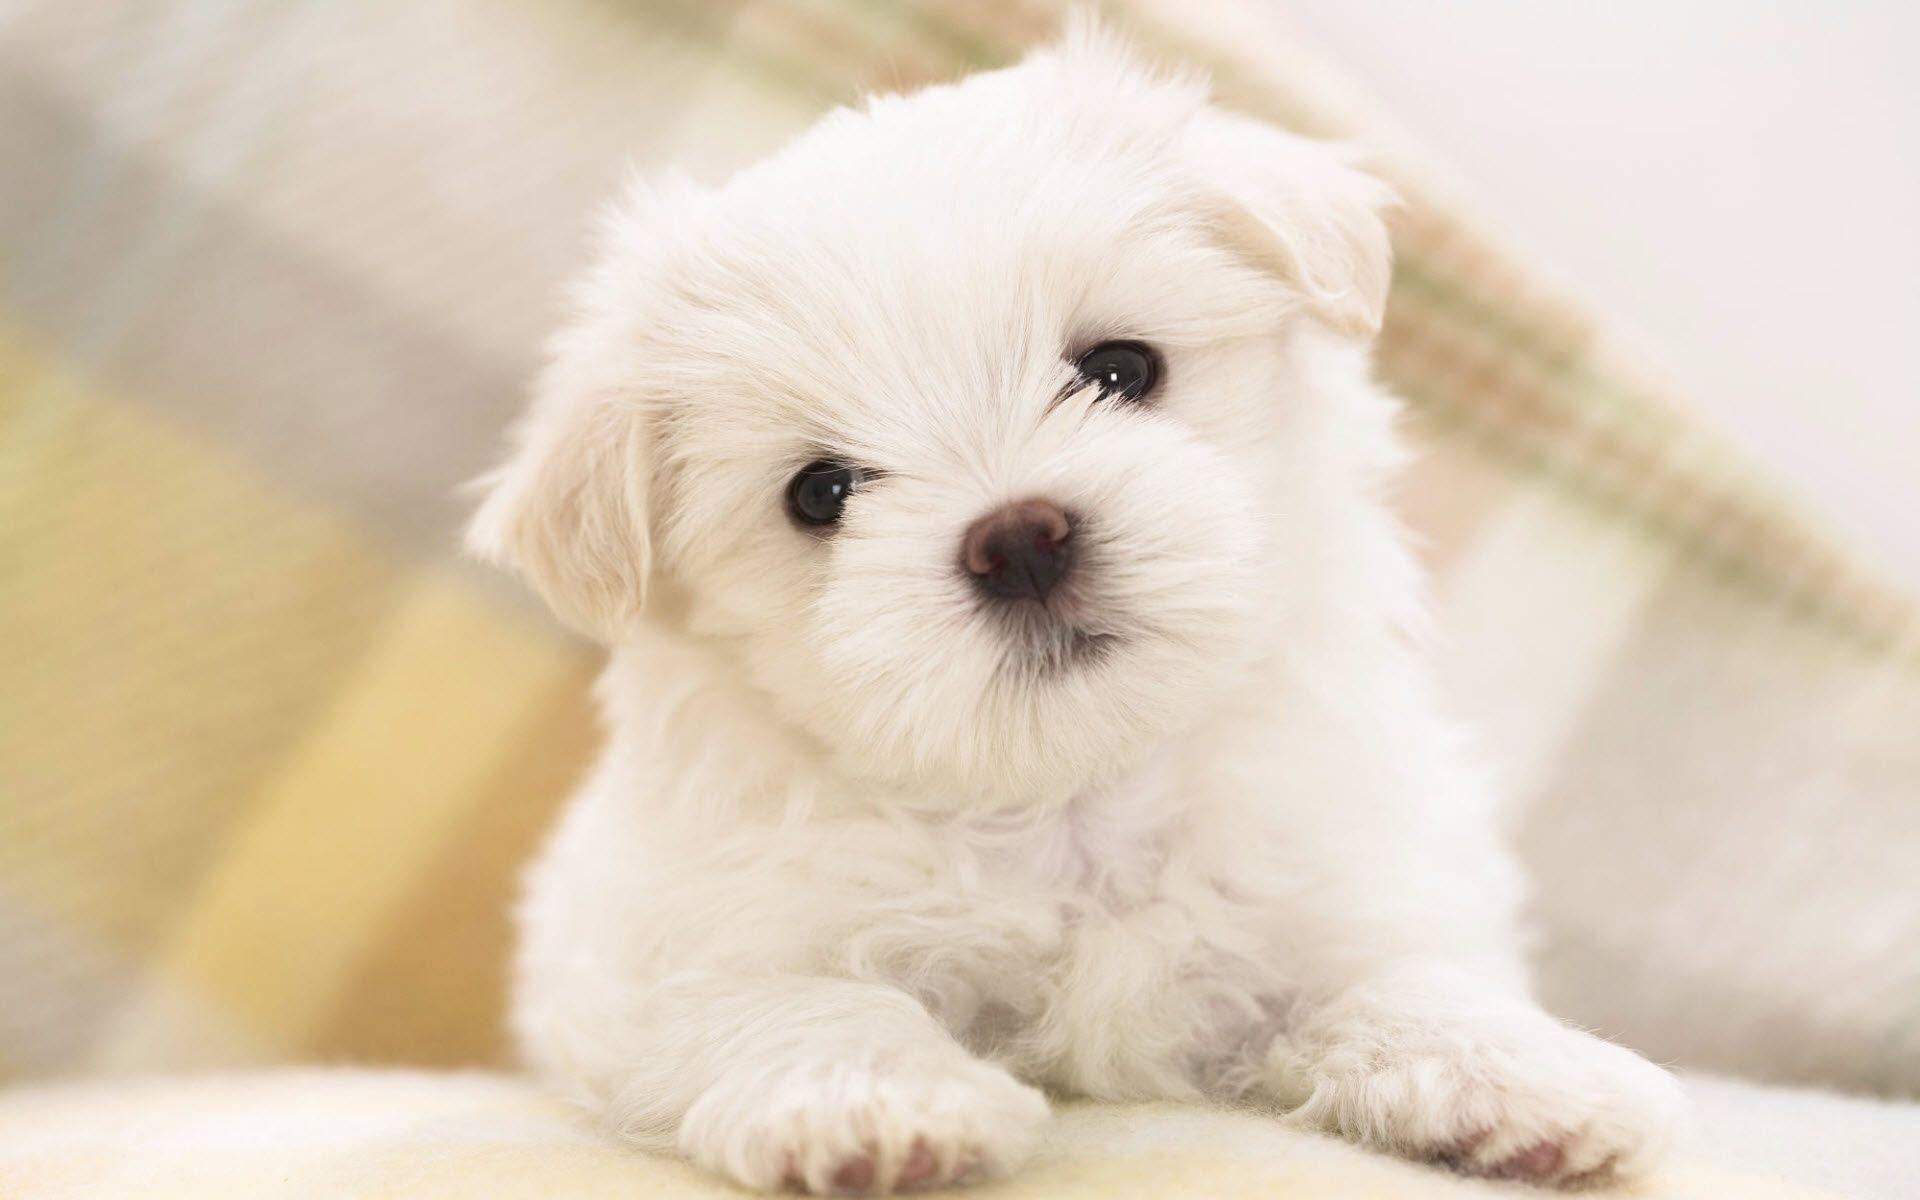 10 Most Popular Cute Puppies Wallpapers For Computer FULL HD 1920×1080 For PC Background